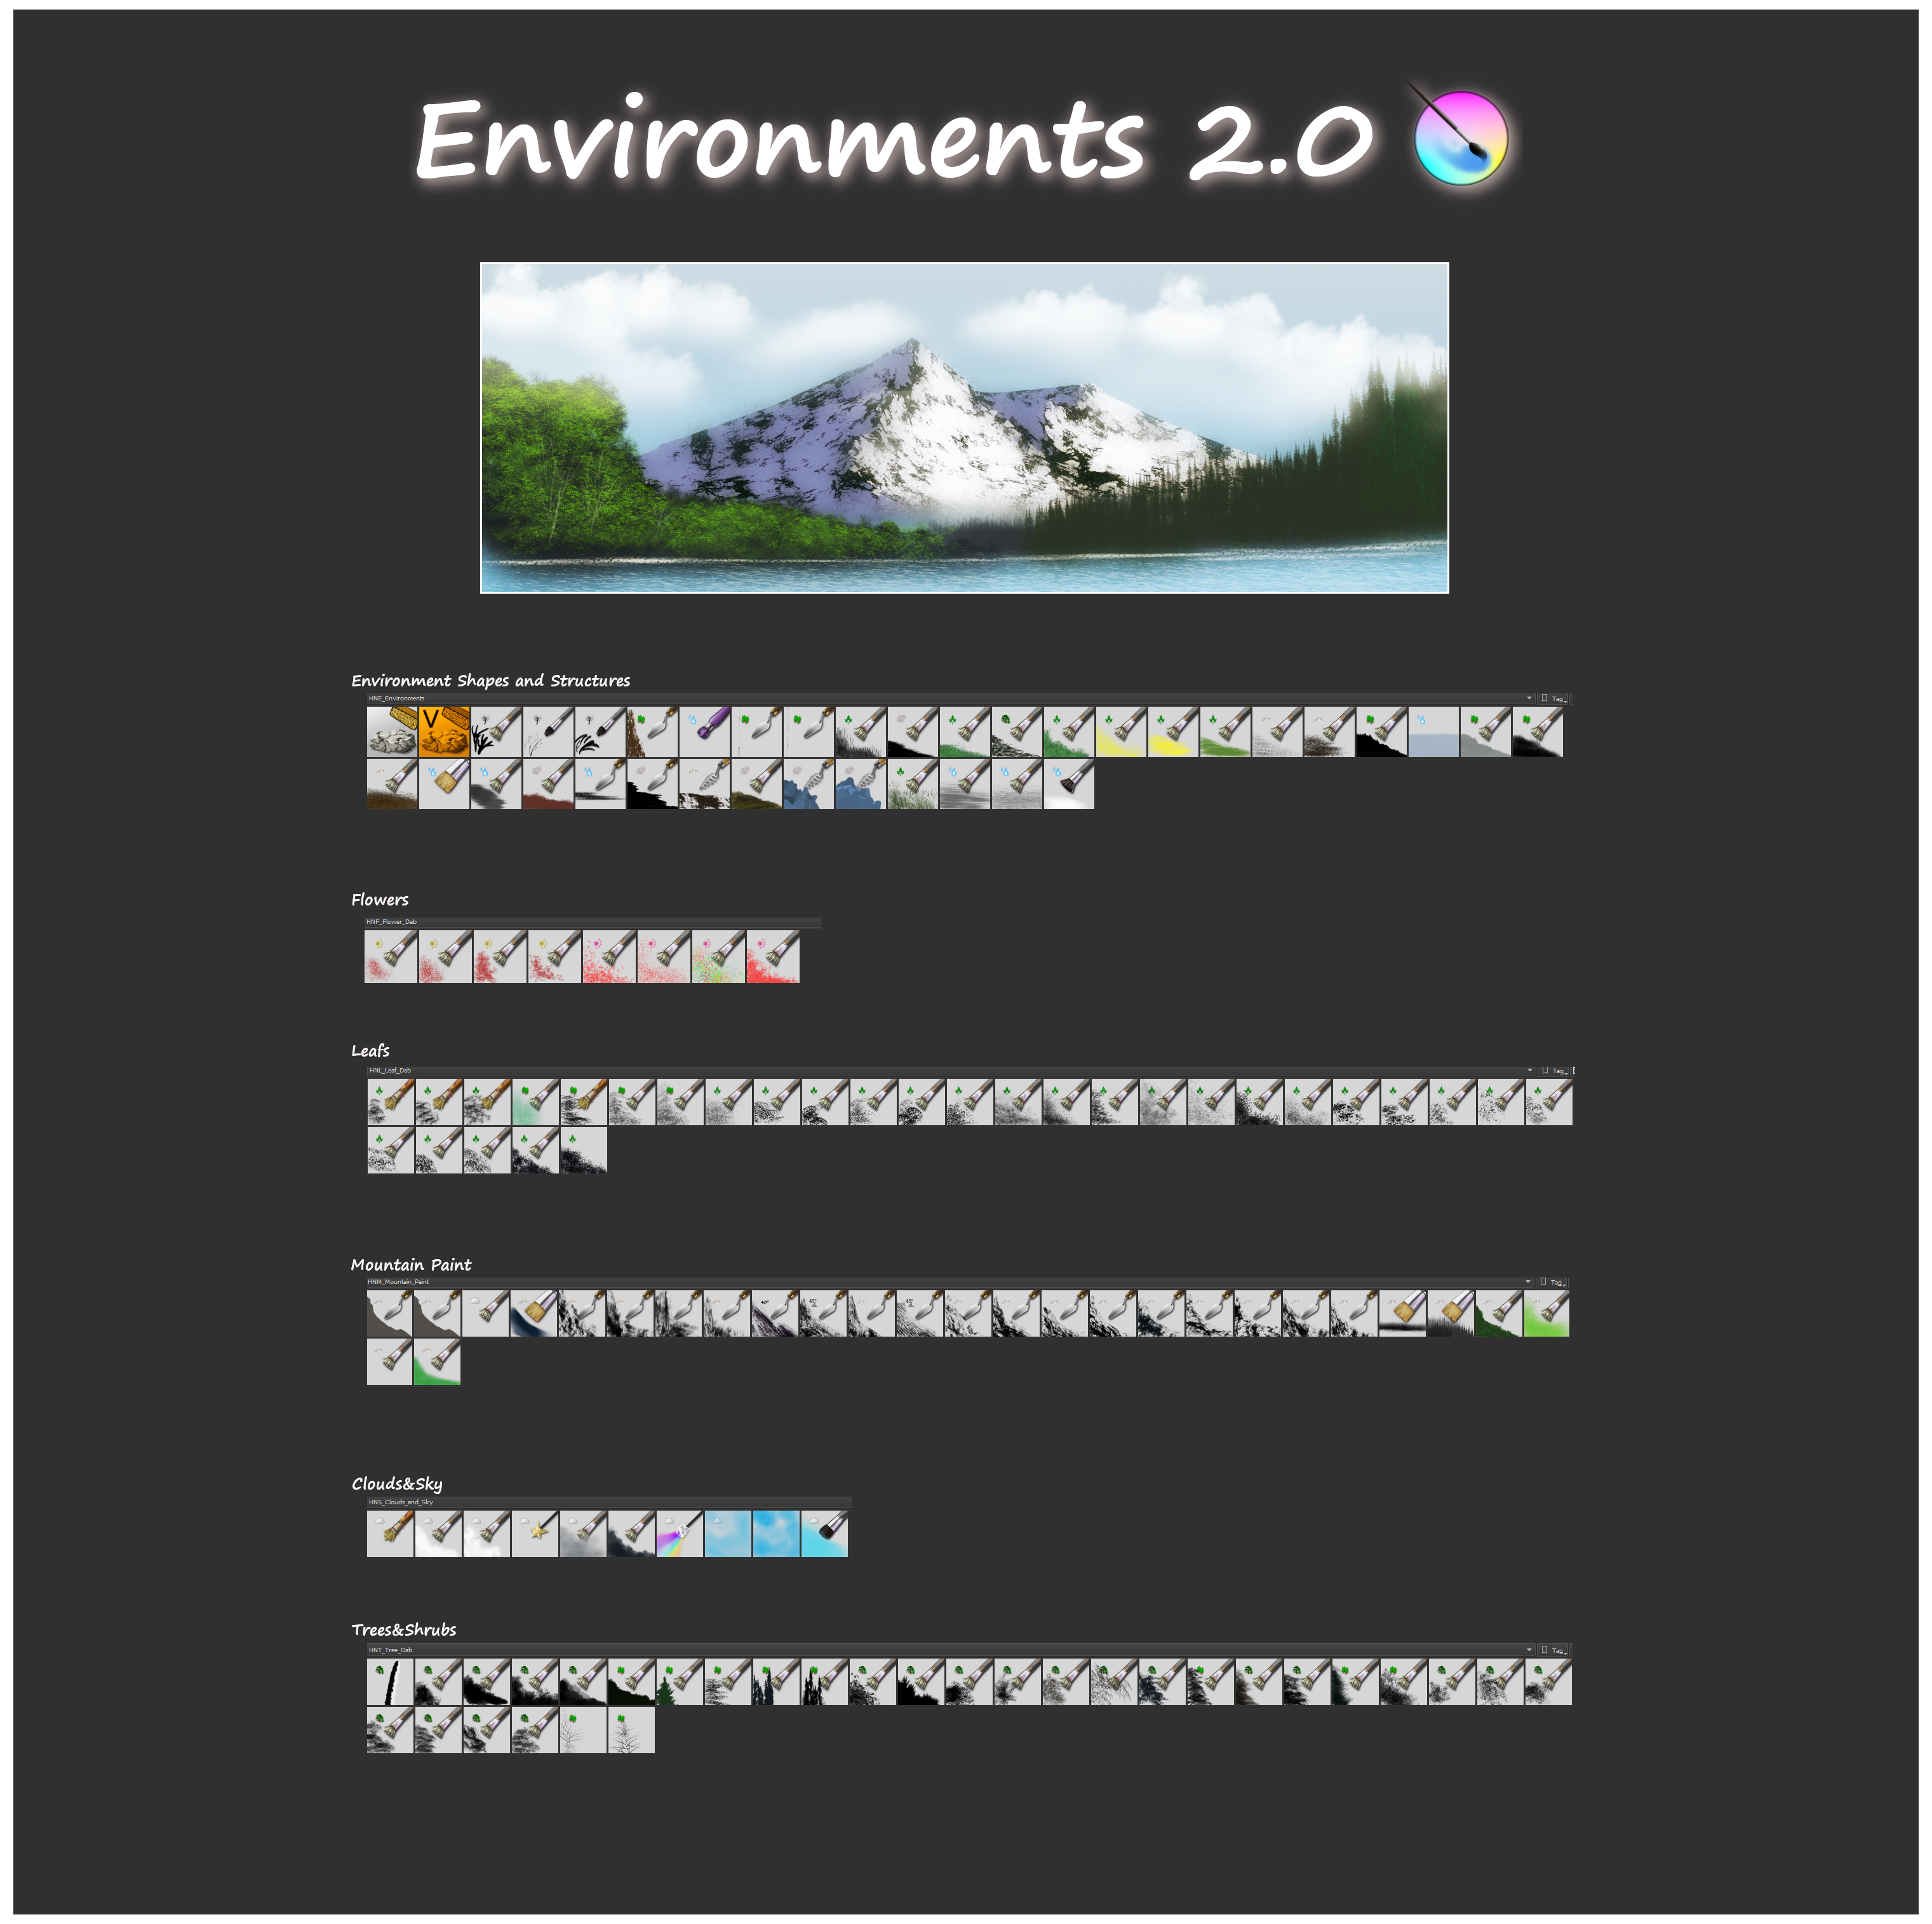 Environments 2.0 by IForce73